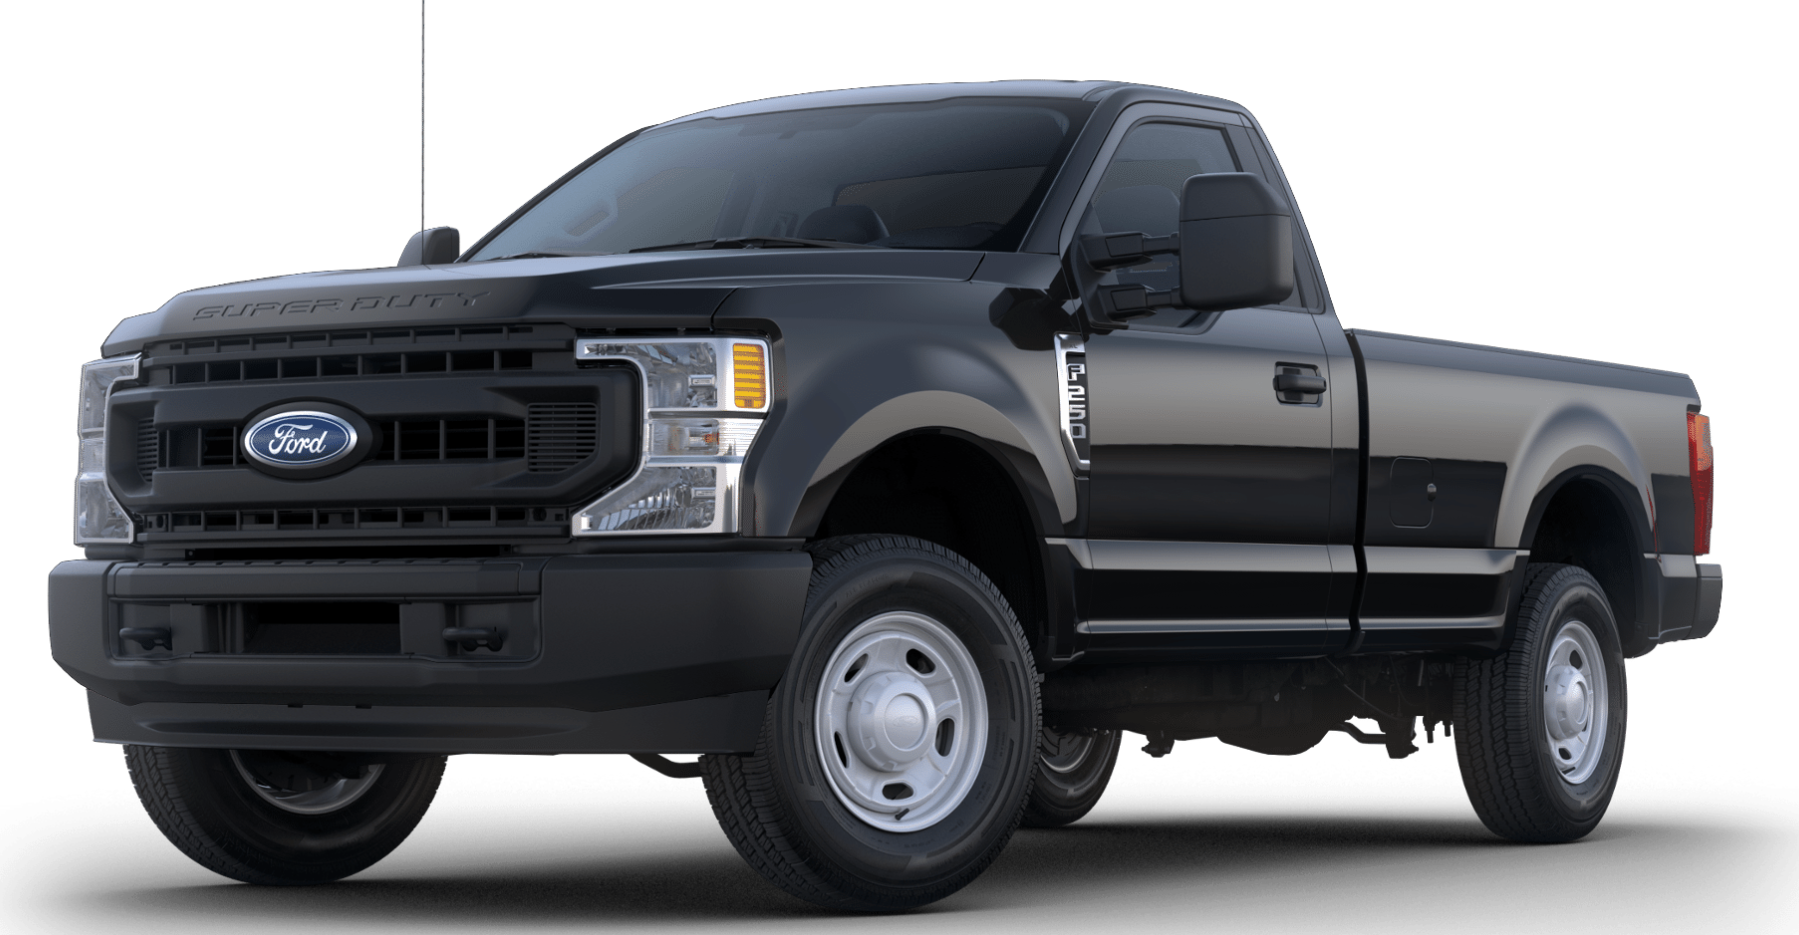 2020 Ford Super Duty F-250 Front View Black Exterior Picture.png